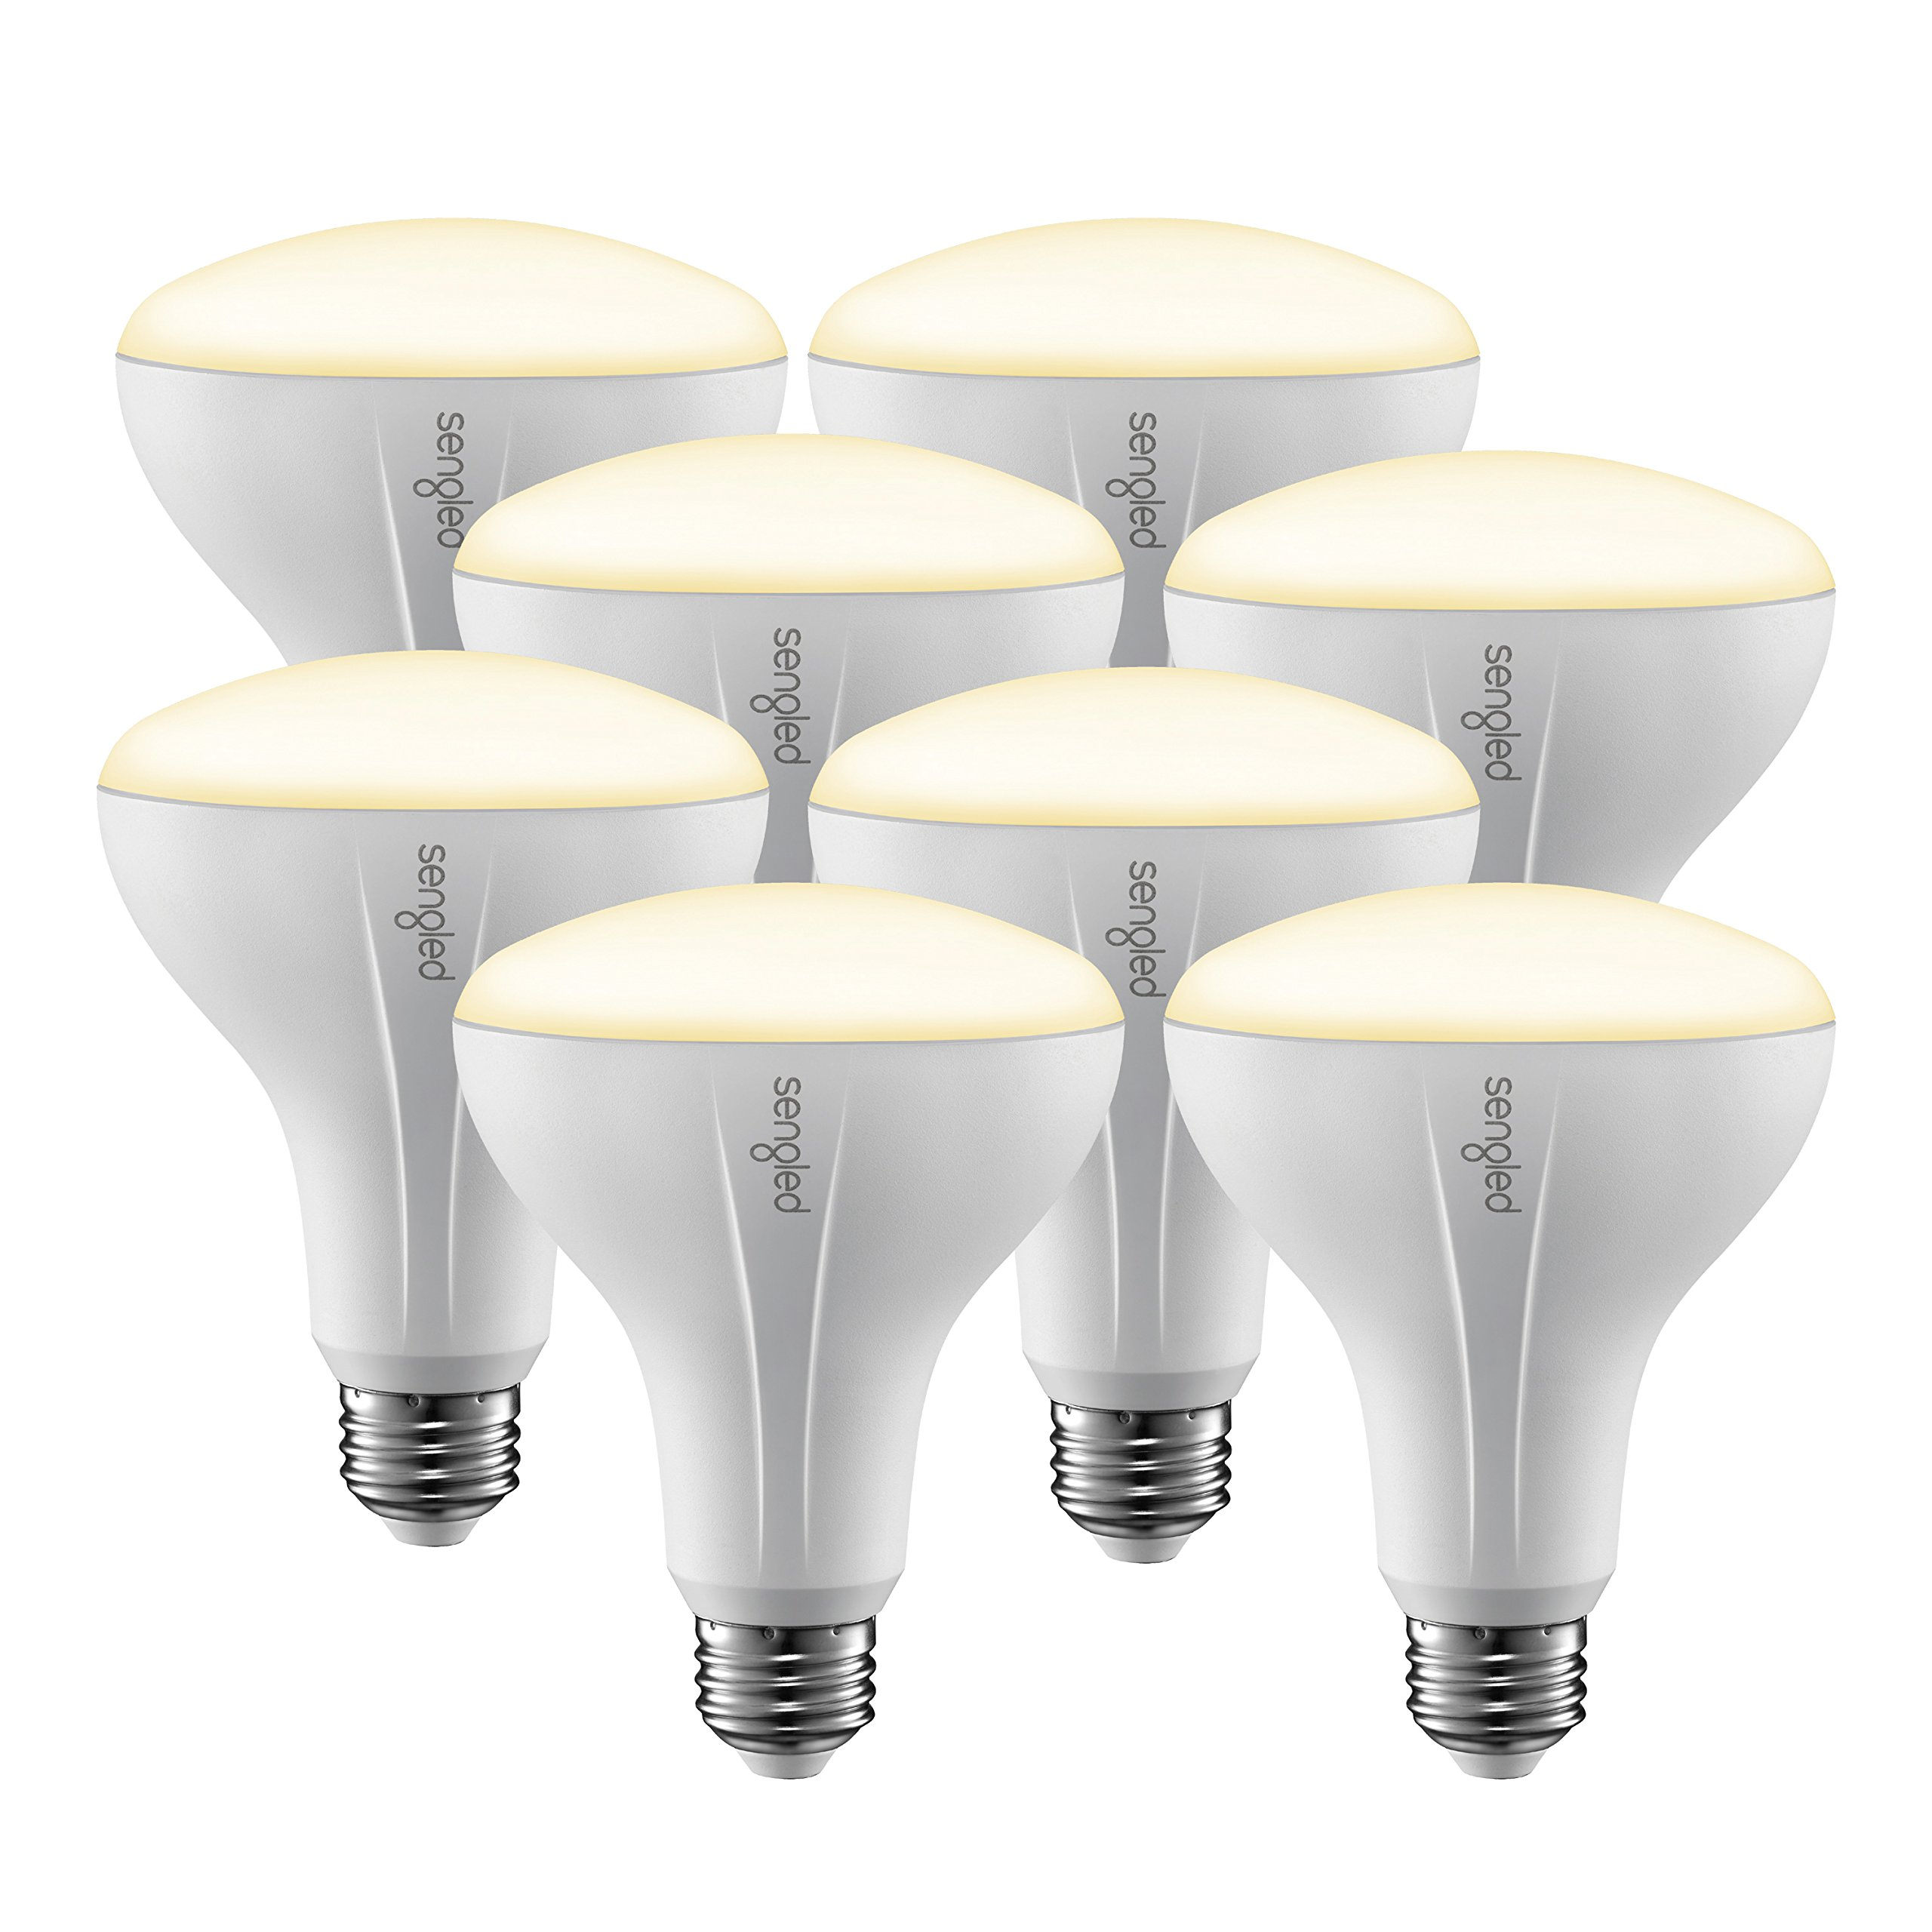 Details About Sengled Element Smart Home Br30 Floodlight Bulb Compatible With Smartthings